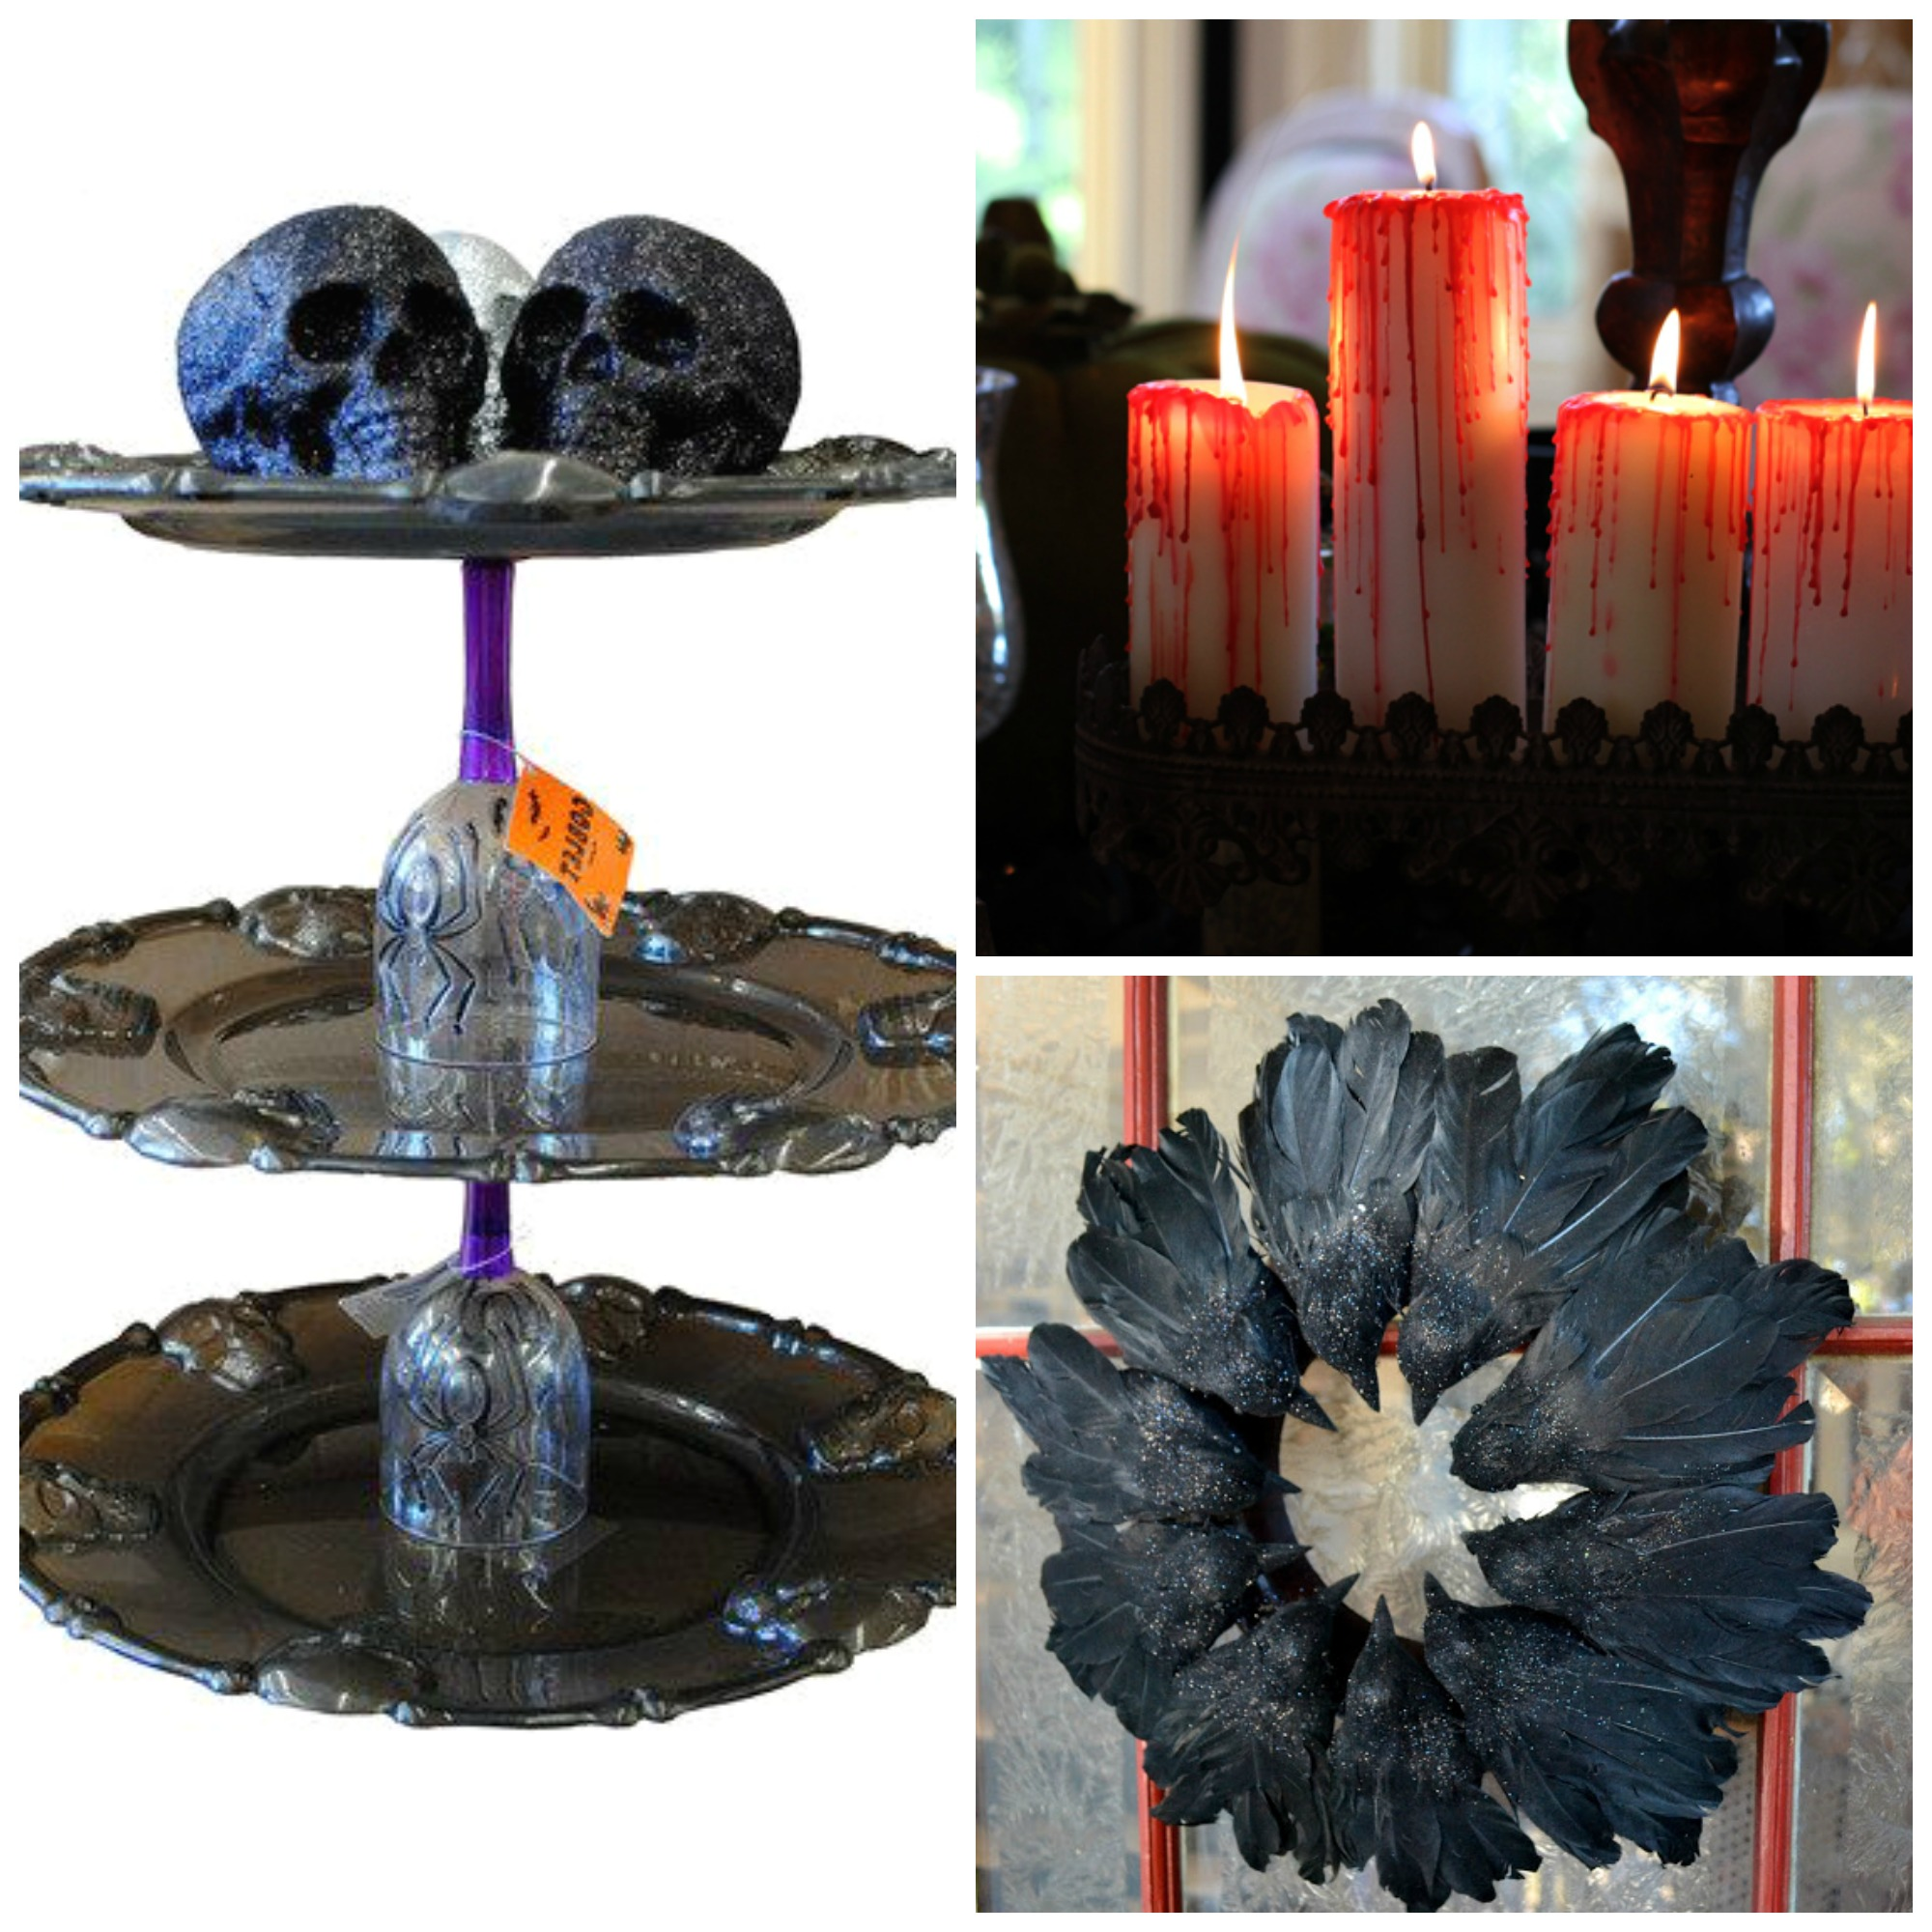 70 Dollar Store Halloween Decor Ideas That Anyone Can Do Chasing A Better Life Lifestyle Keto Guide Travel Keto Recipes